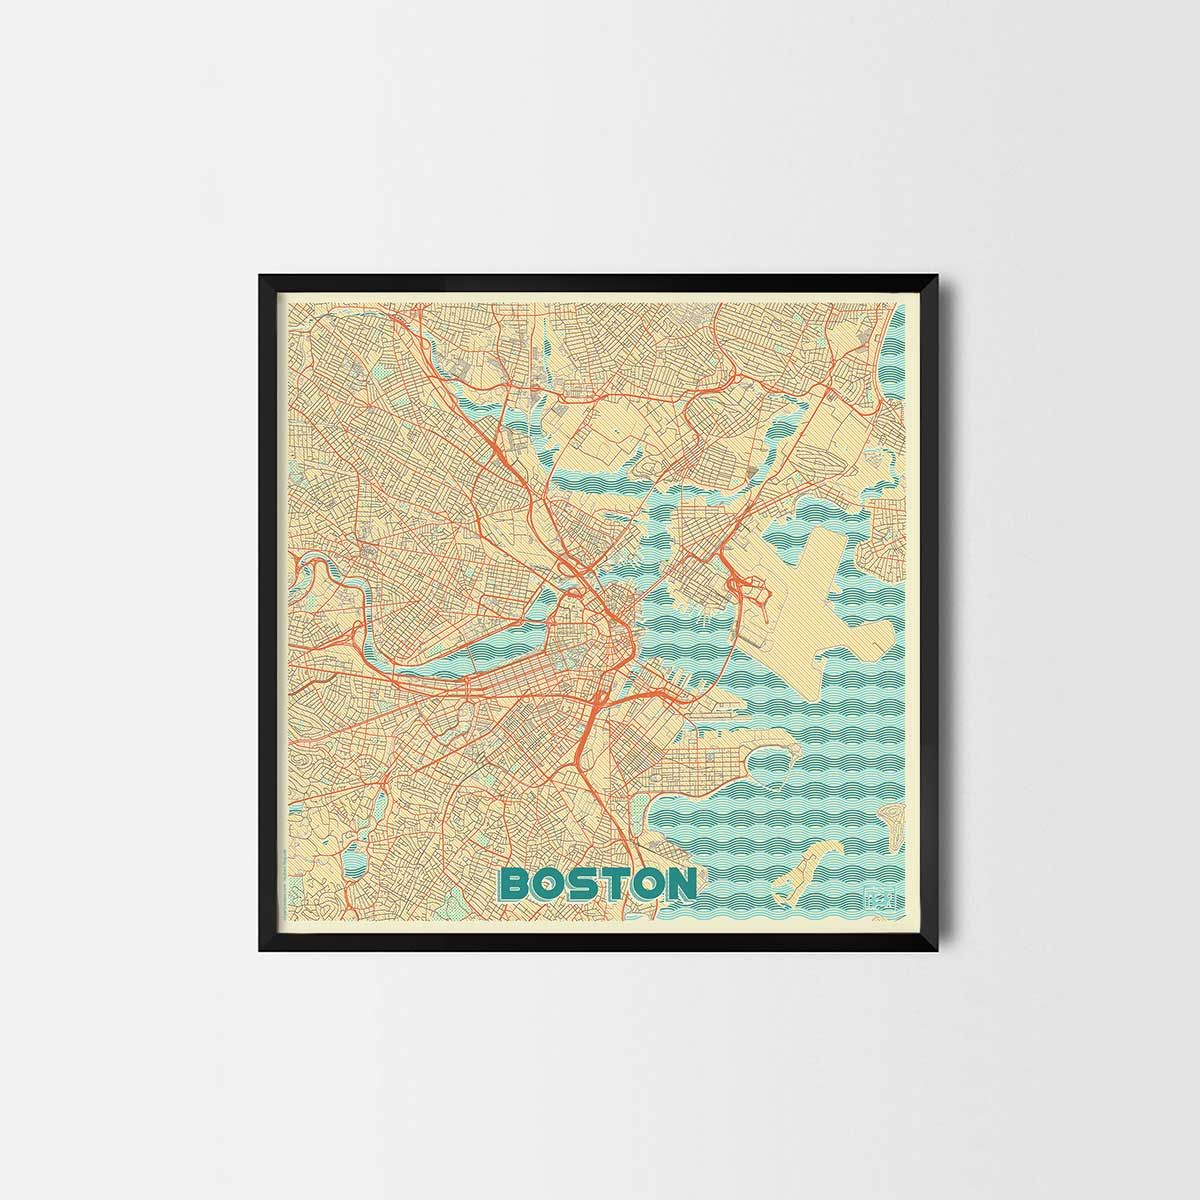 Boston City Prints - City Art Posters and Map Prints | Art posters ...